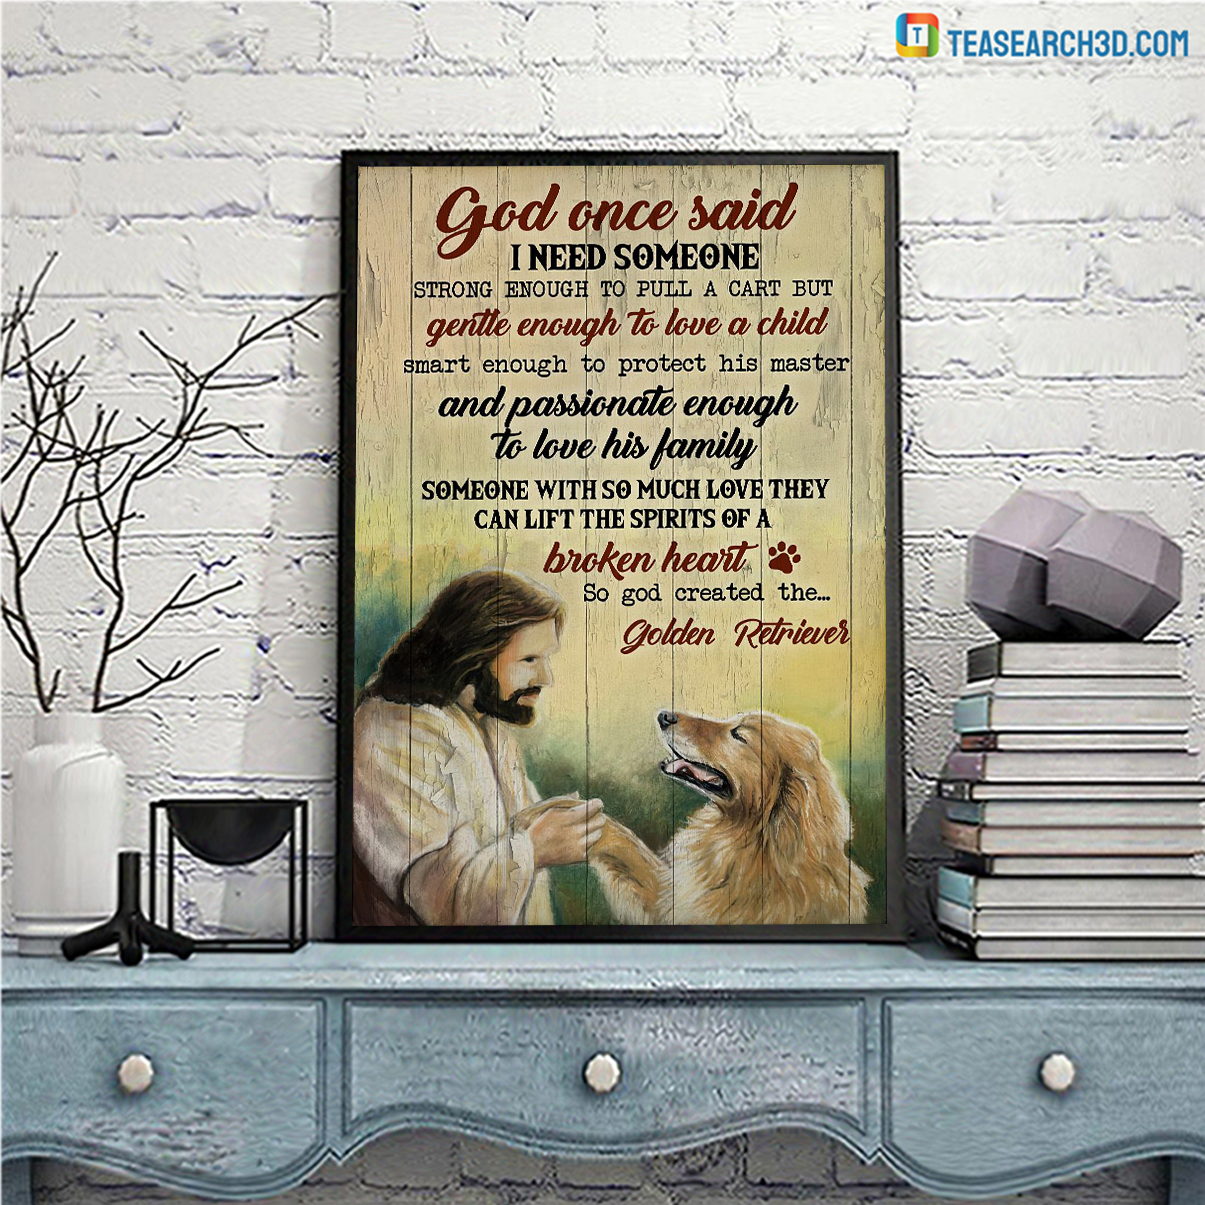 Golden retriever god once said I need someone strong enough to pull a cart poster A2